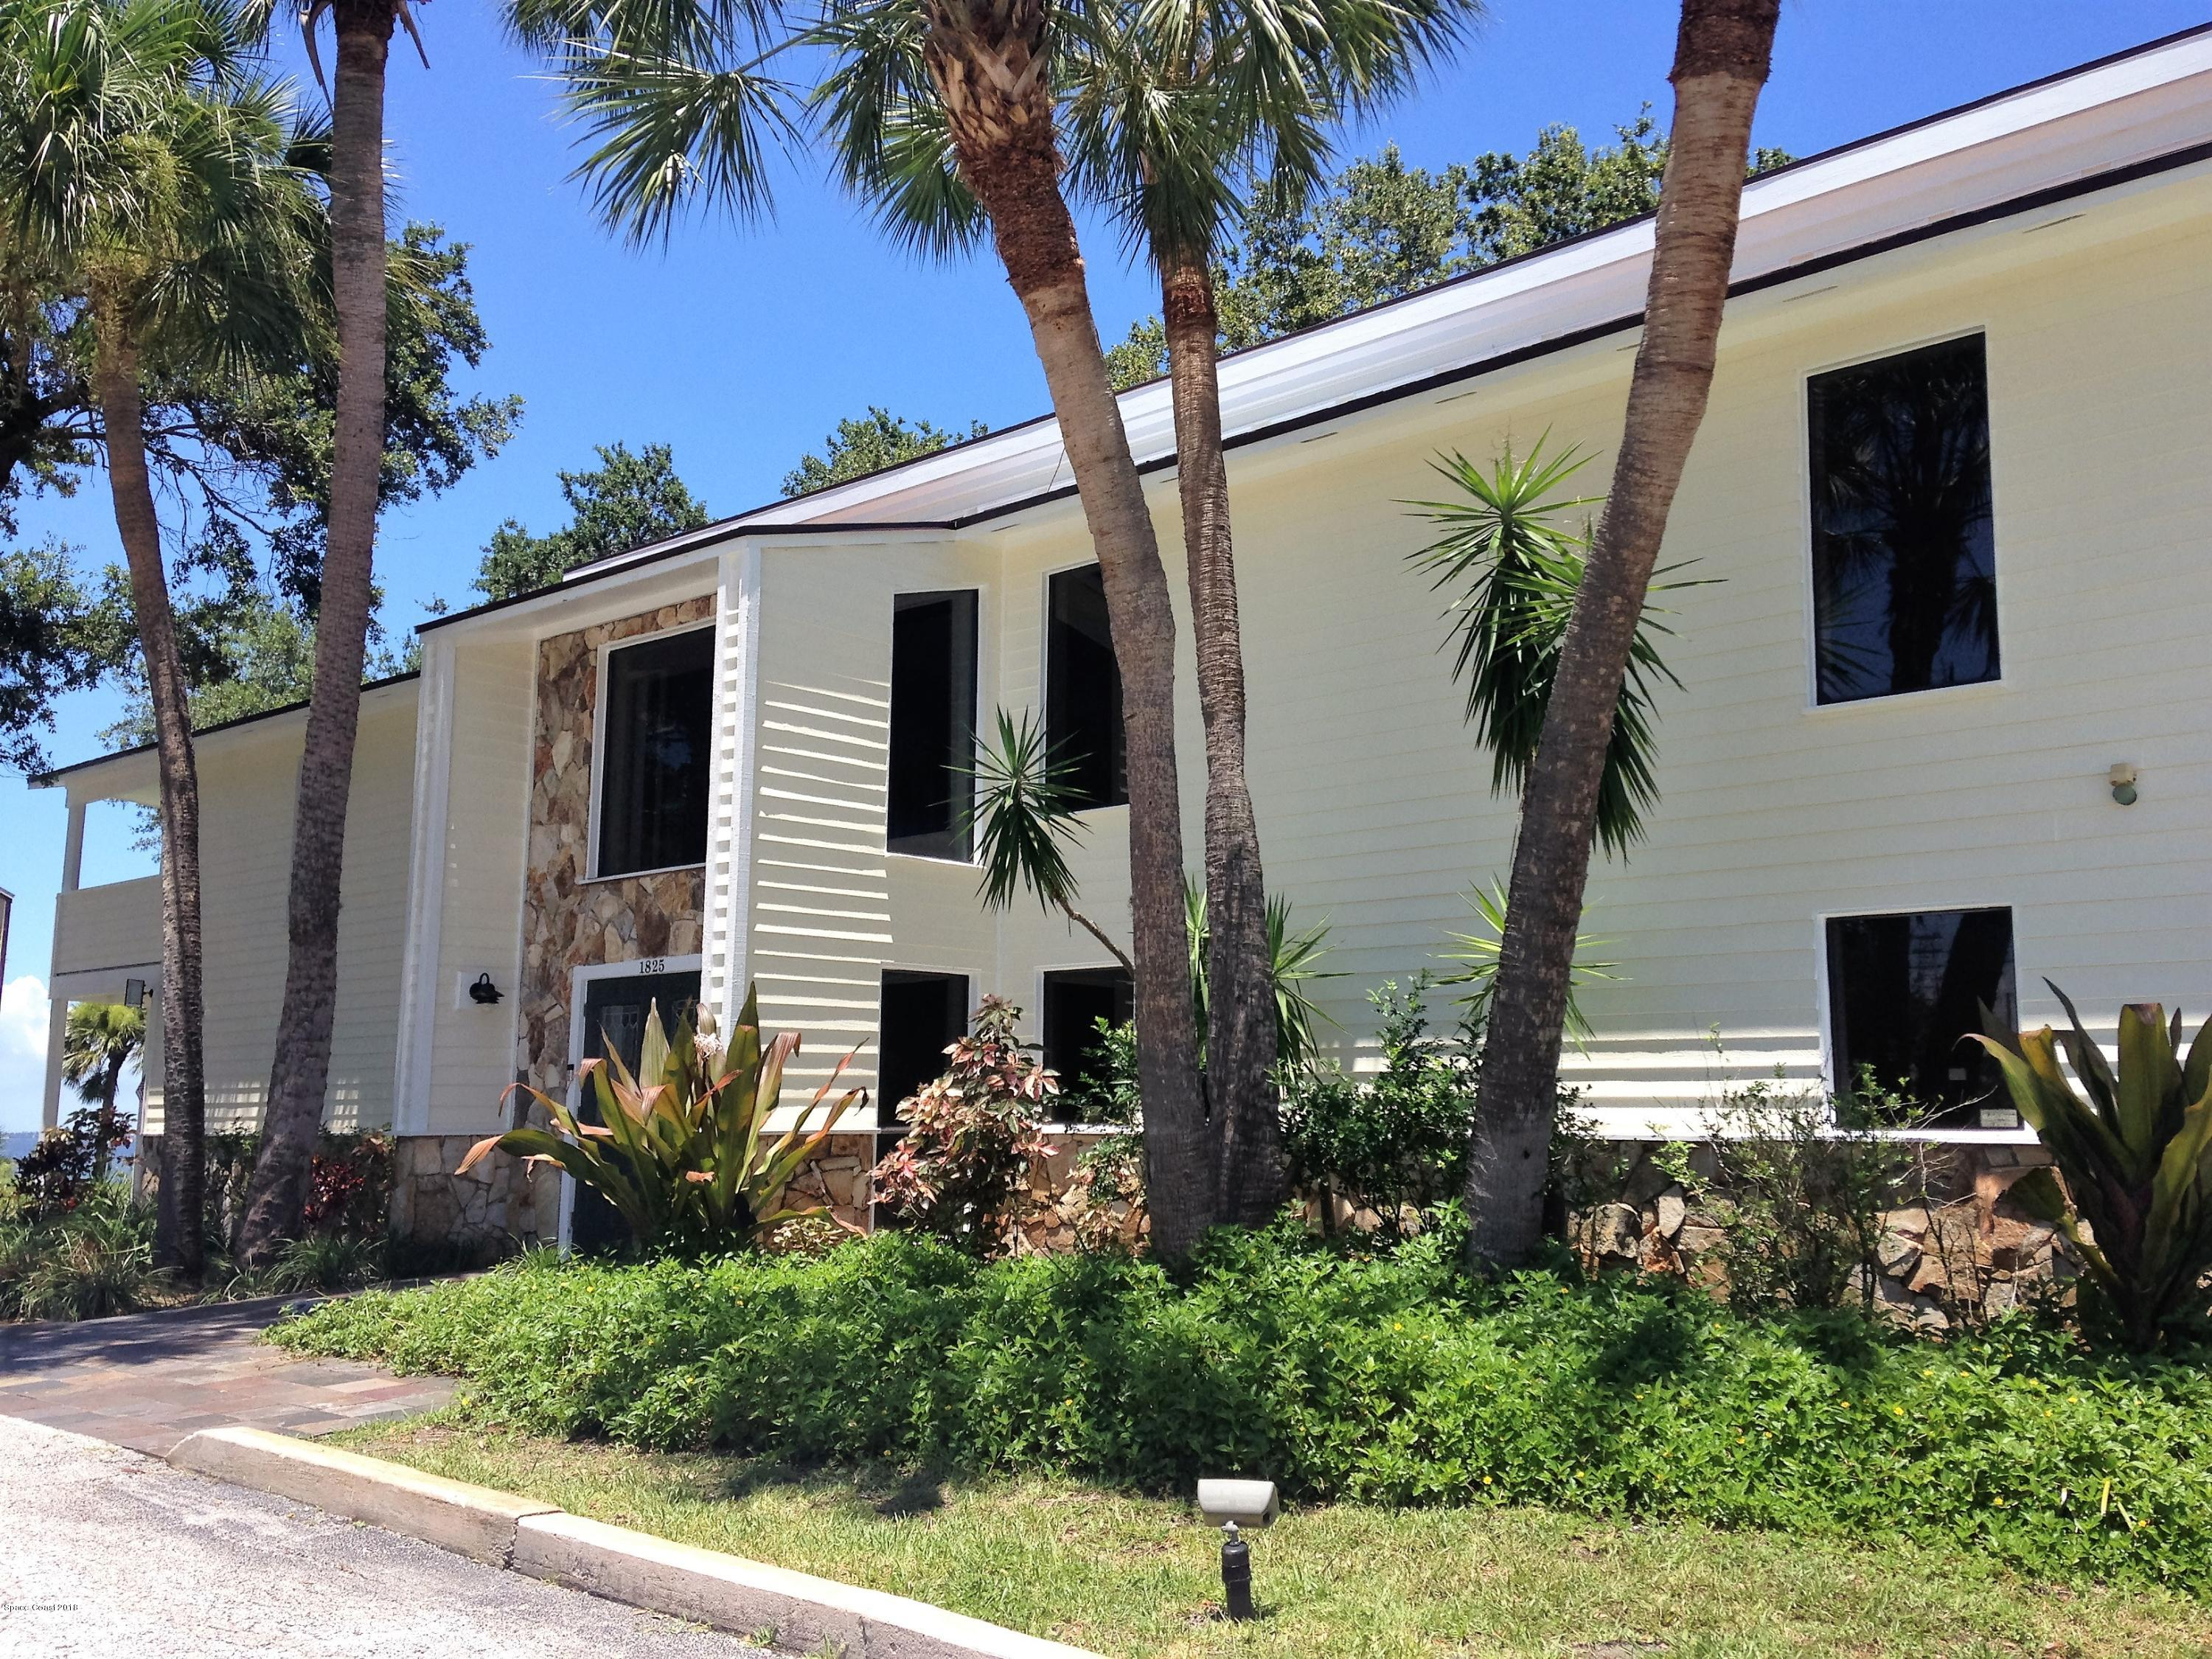 Commercial for Rent at 1825 Riverview 1825 Riverview Melbourne, Florida 32901 United States